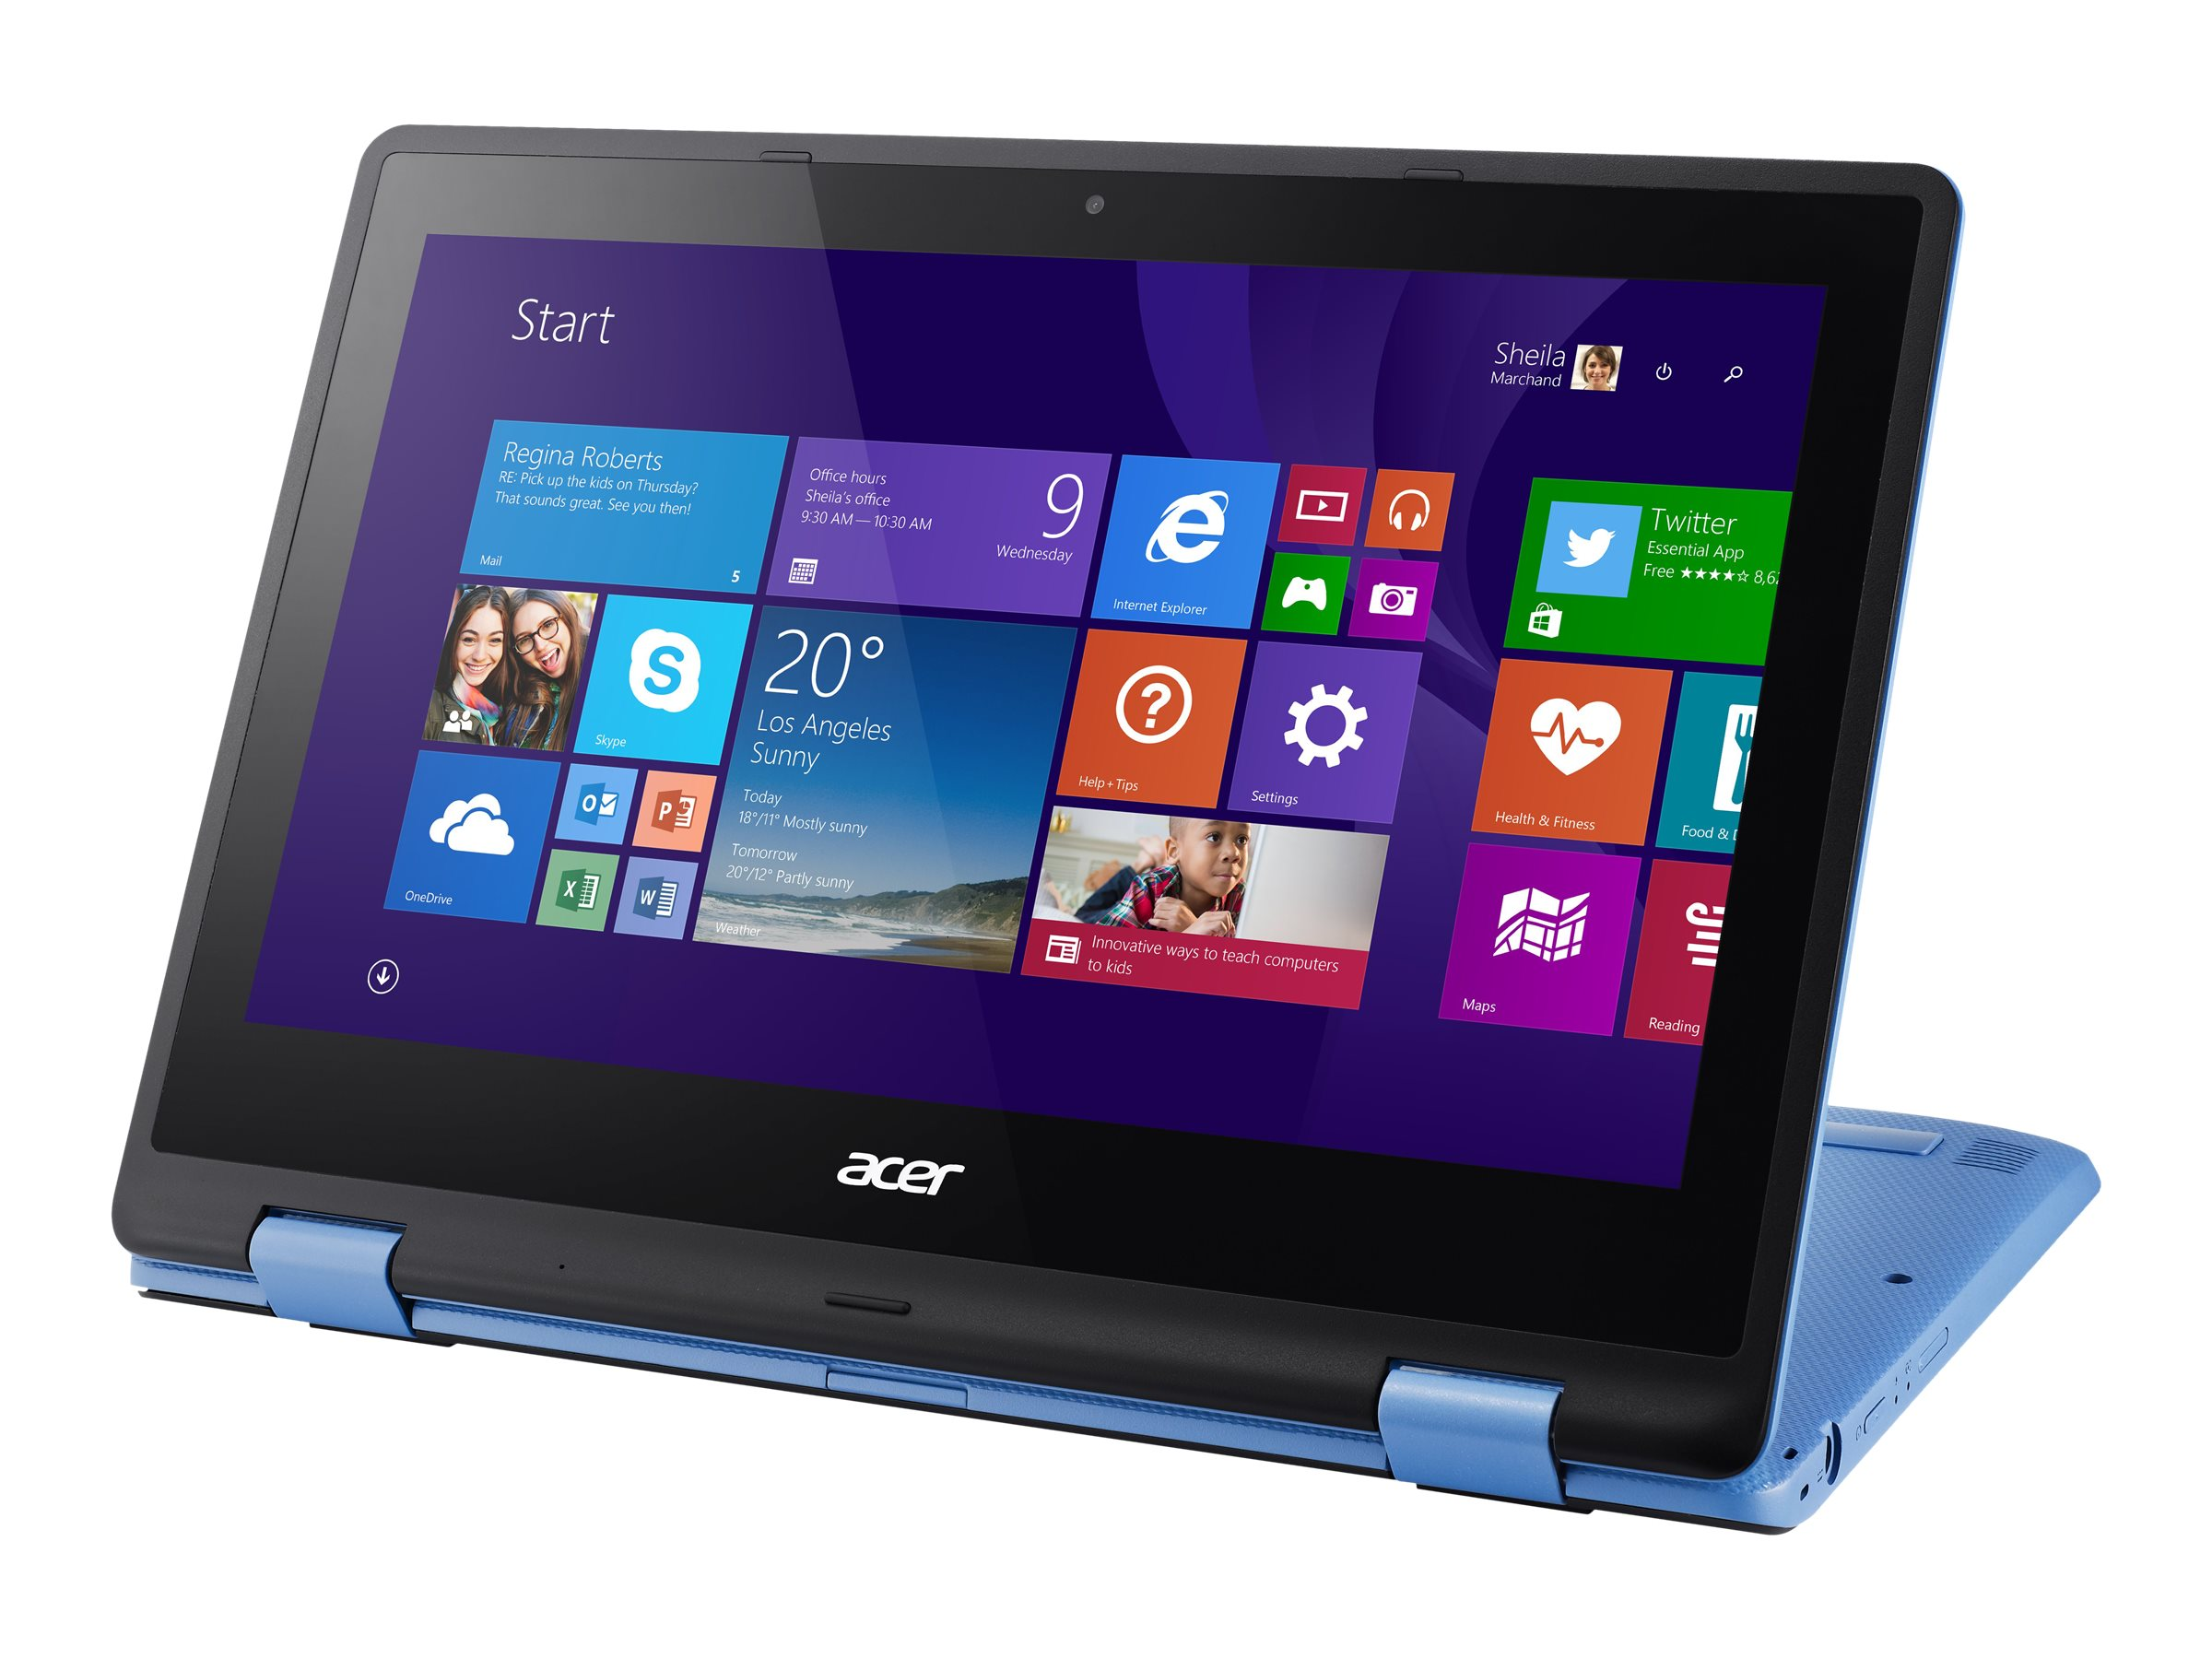 Acer NX.G10AA.008 Image 2